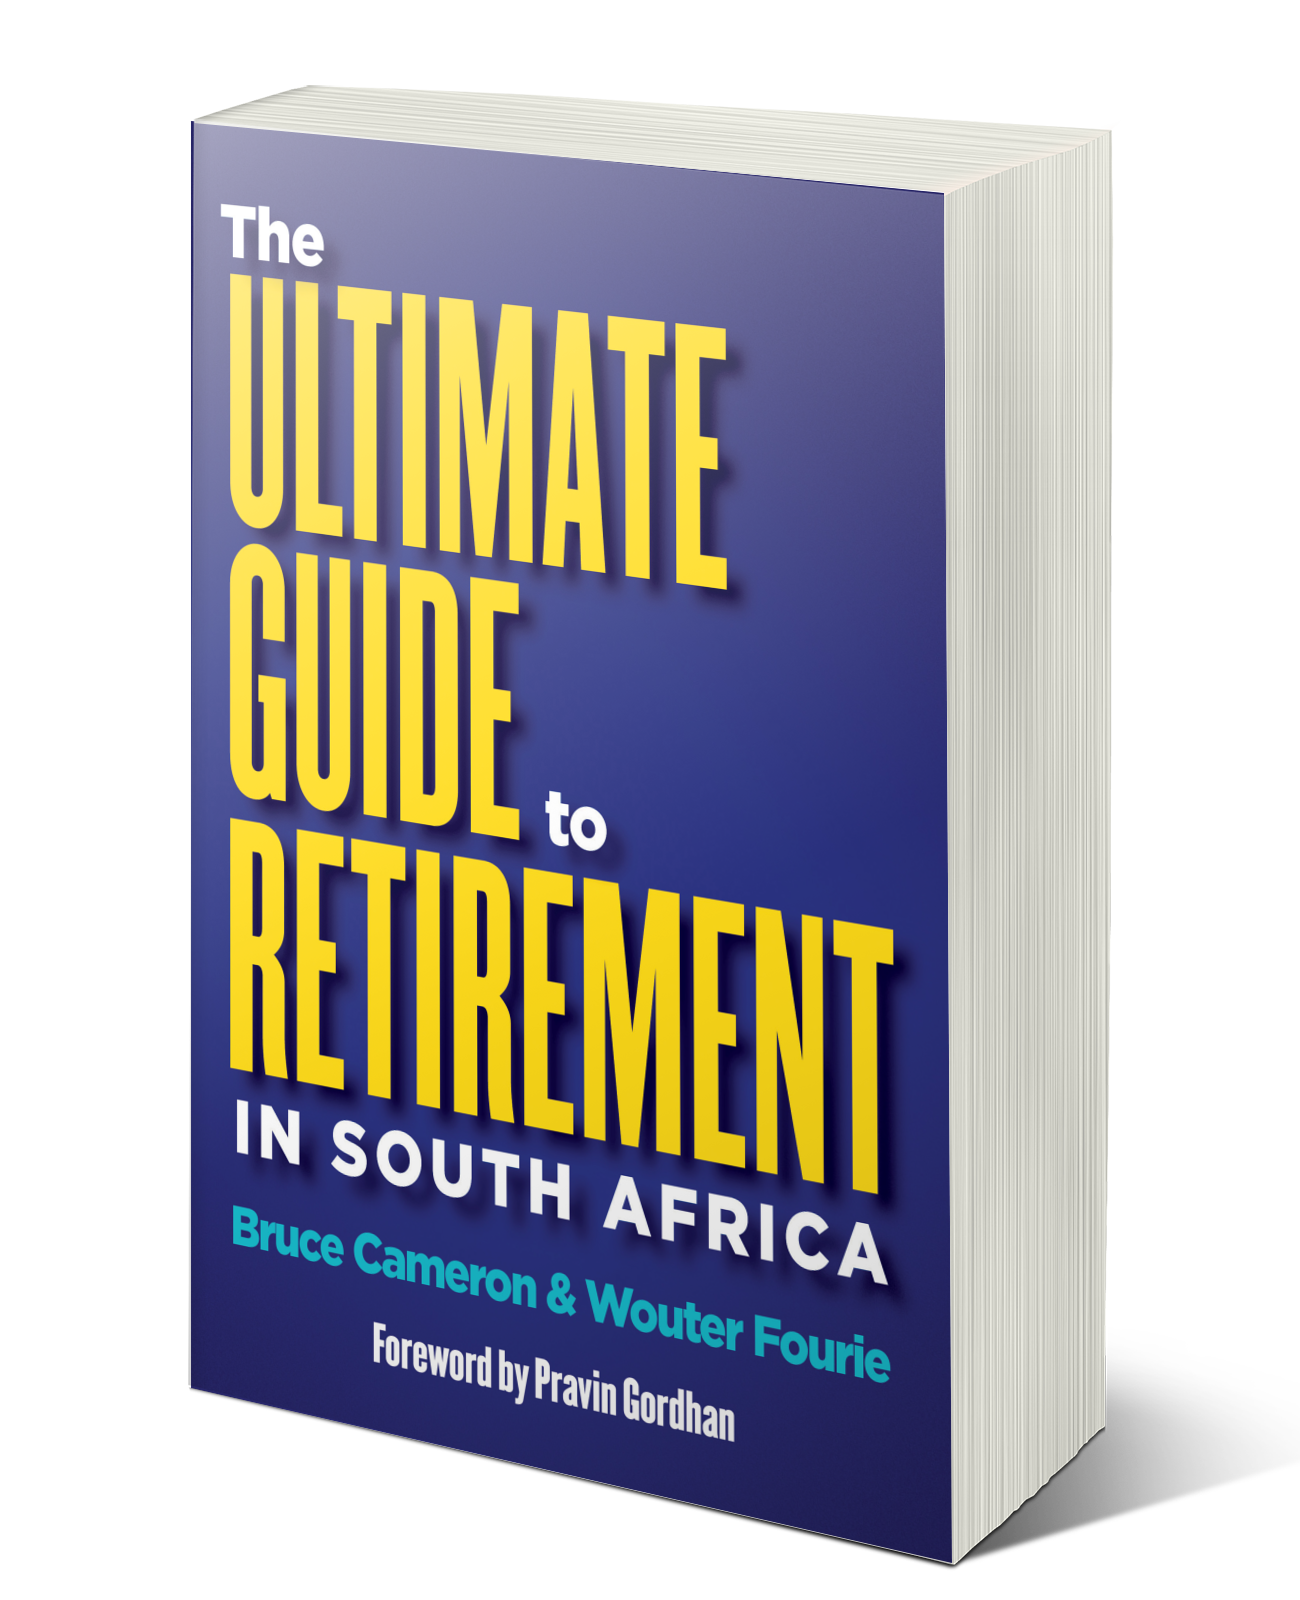 the ultimate guide to retirement in SA logo